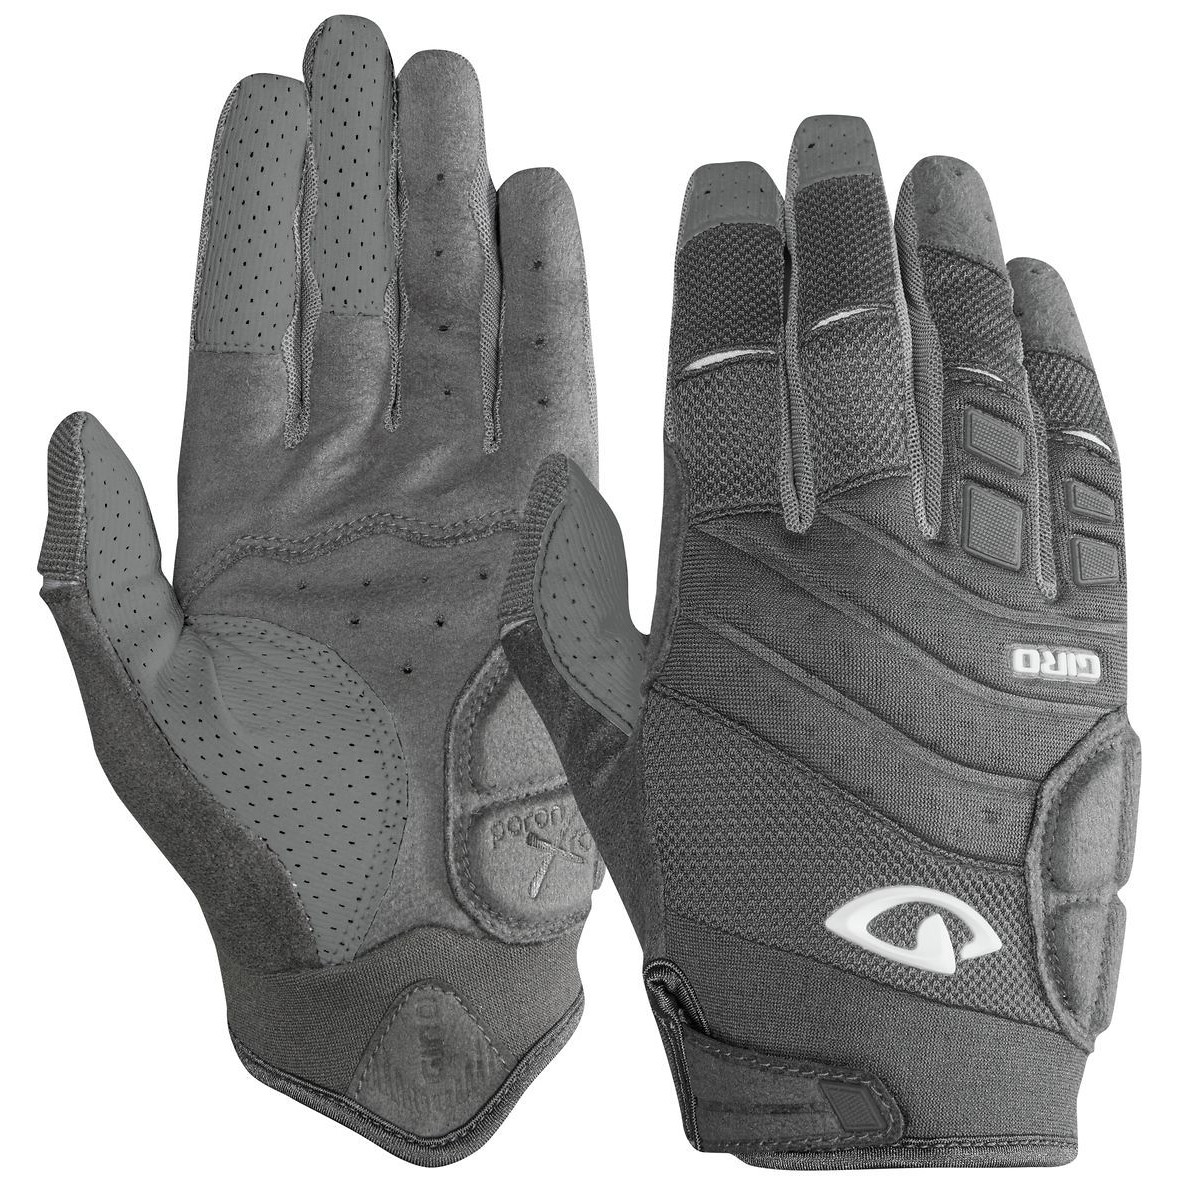 Giro Xena Women's  Gloves Giro Xena Women's Gloves - Titanium : White